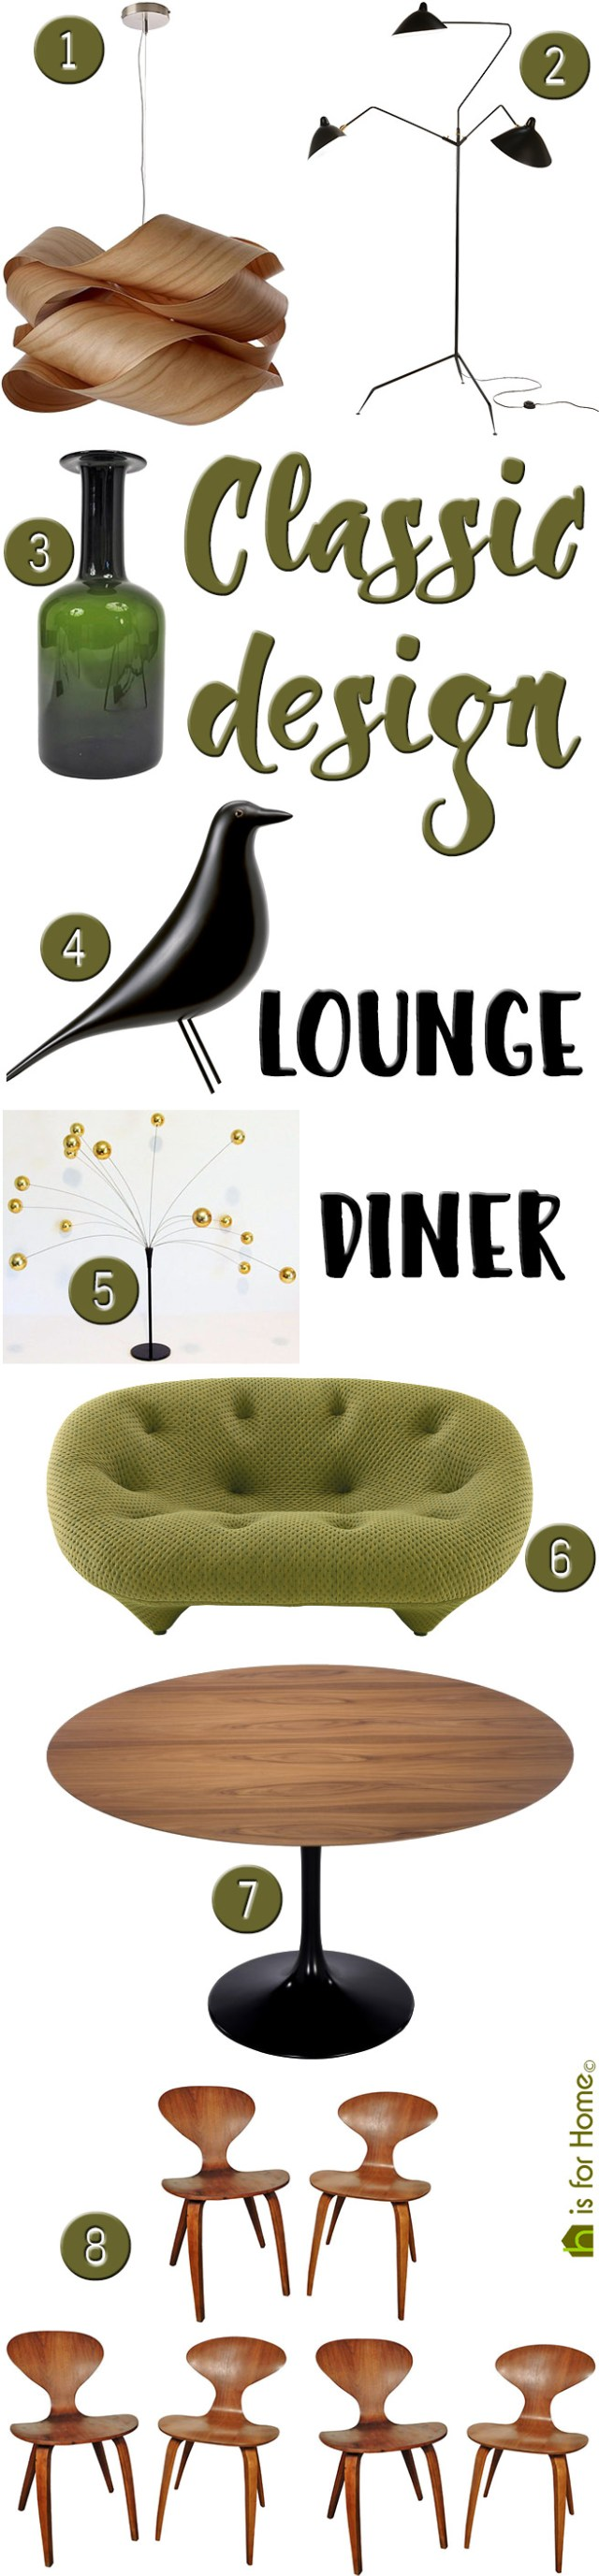 Get their look: Classic design lounge diner | H is for Home